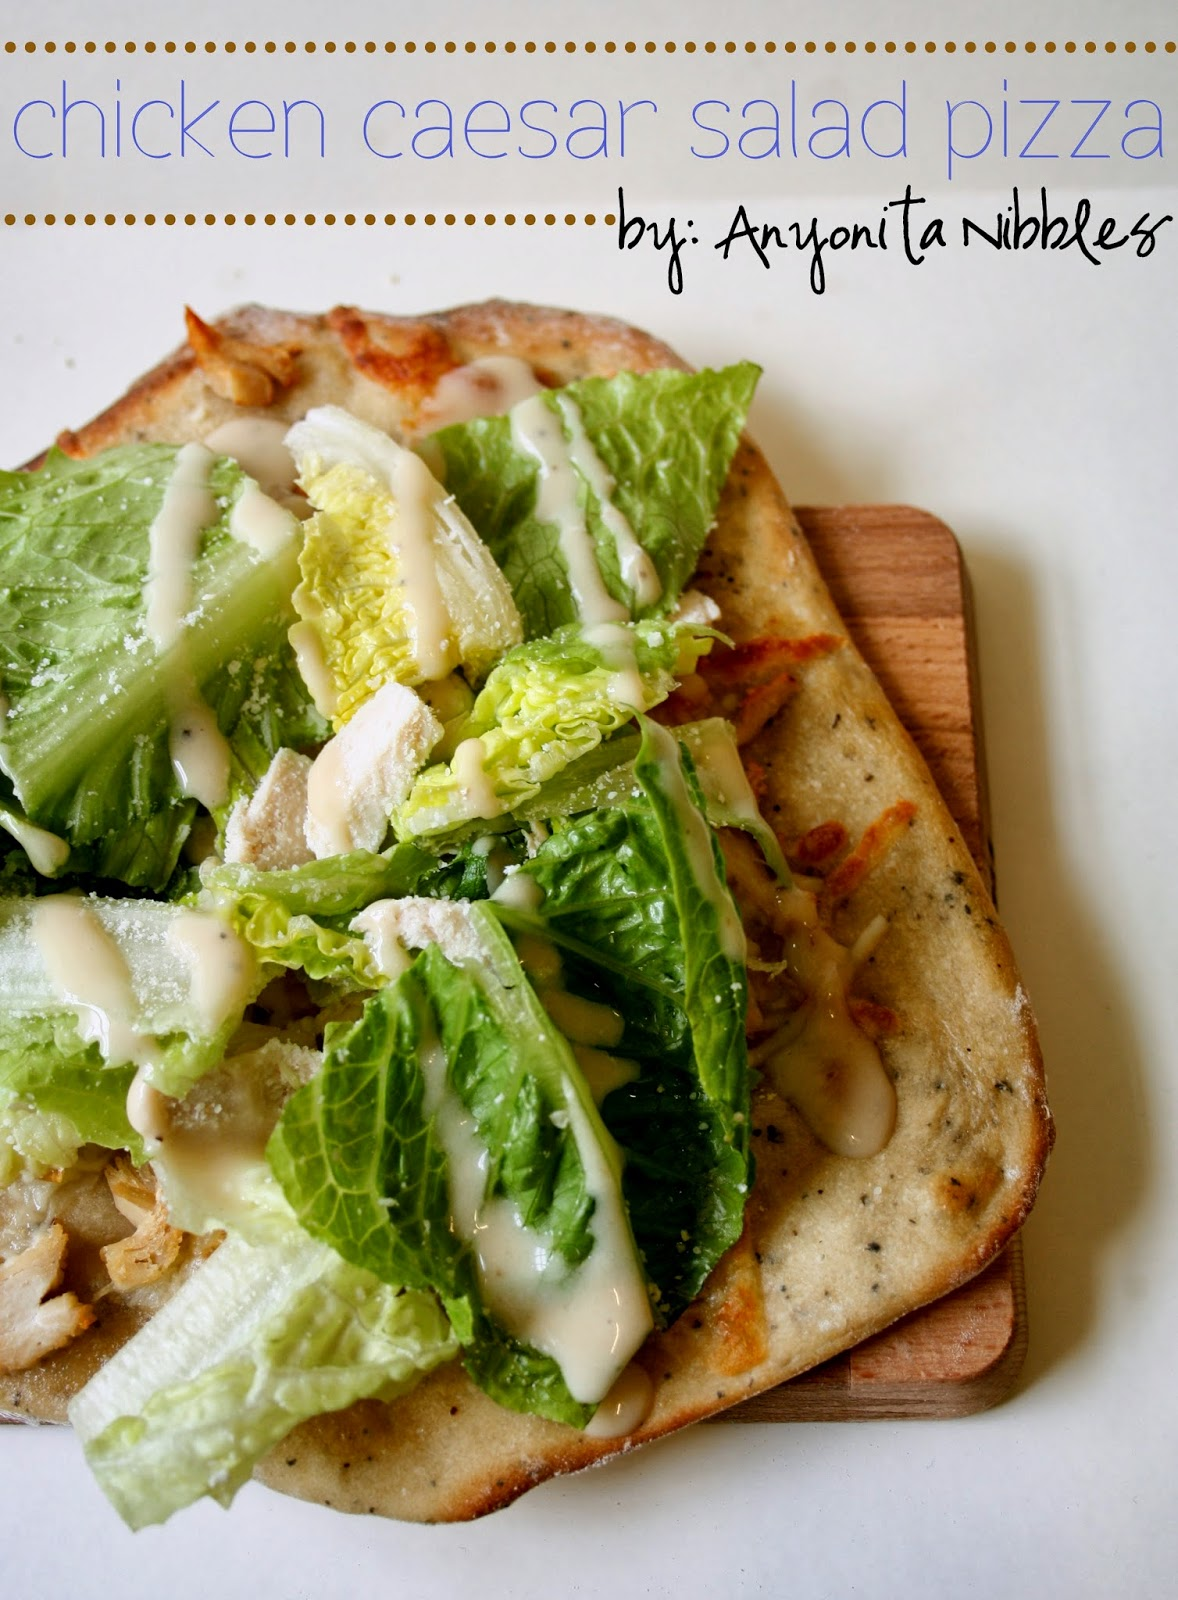 http://www.anyonita-nibbles.co.uk/2014/03/chicken-caesar-salad-pizza.html